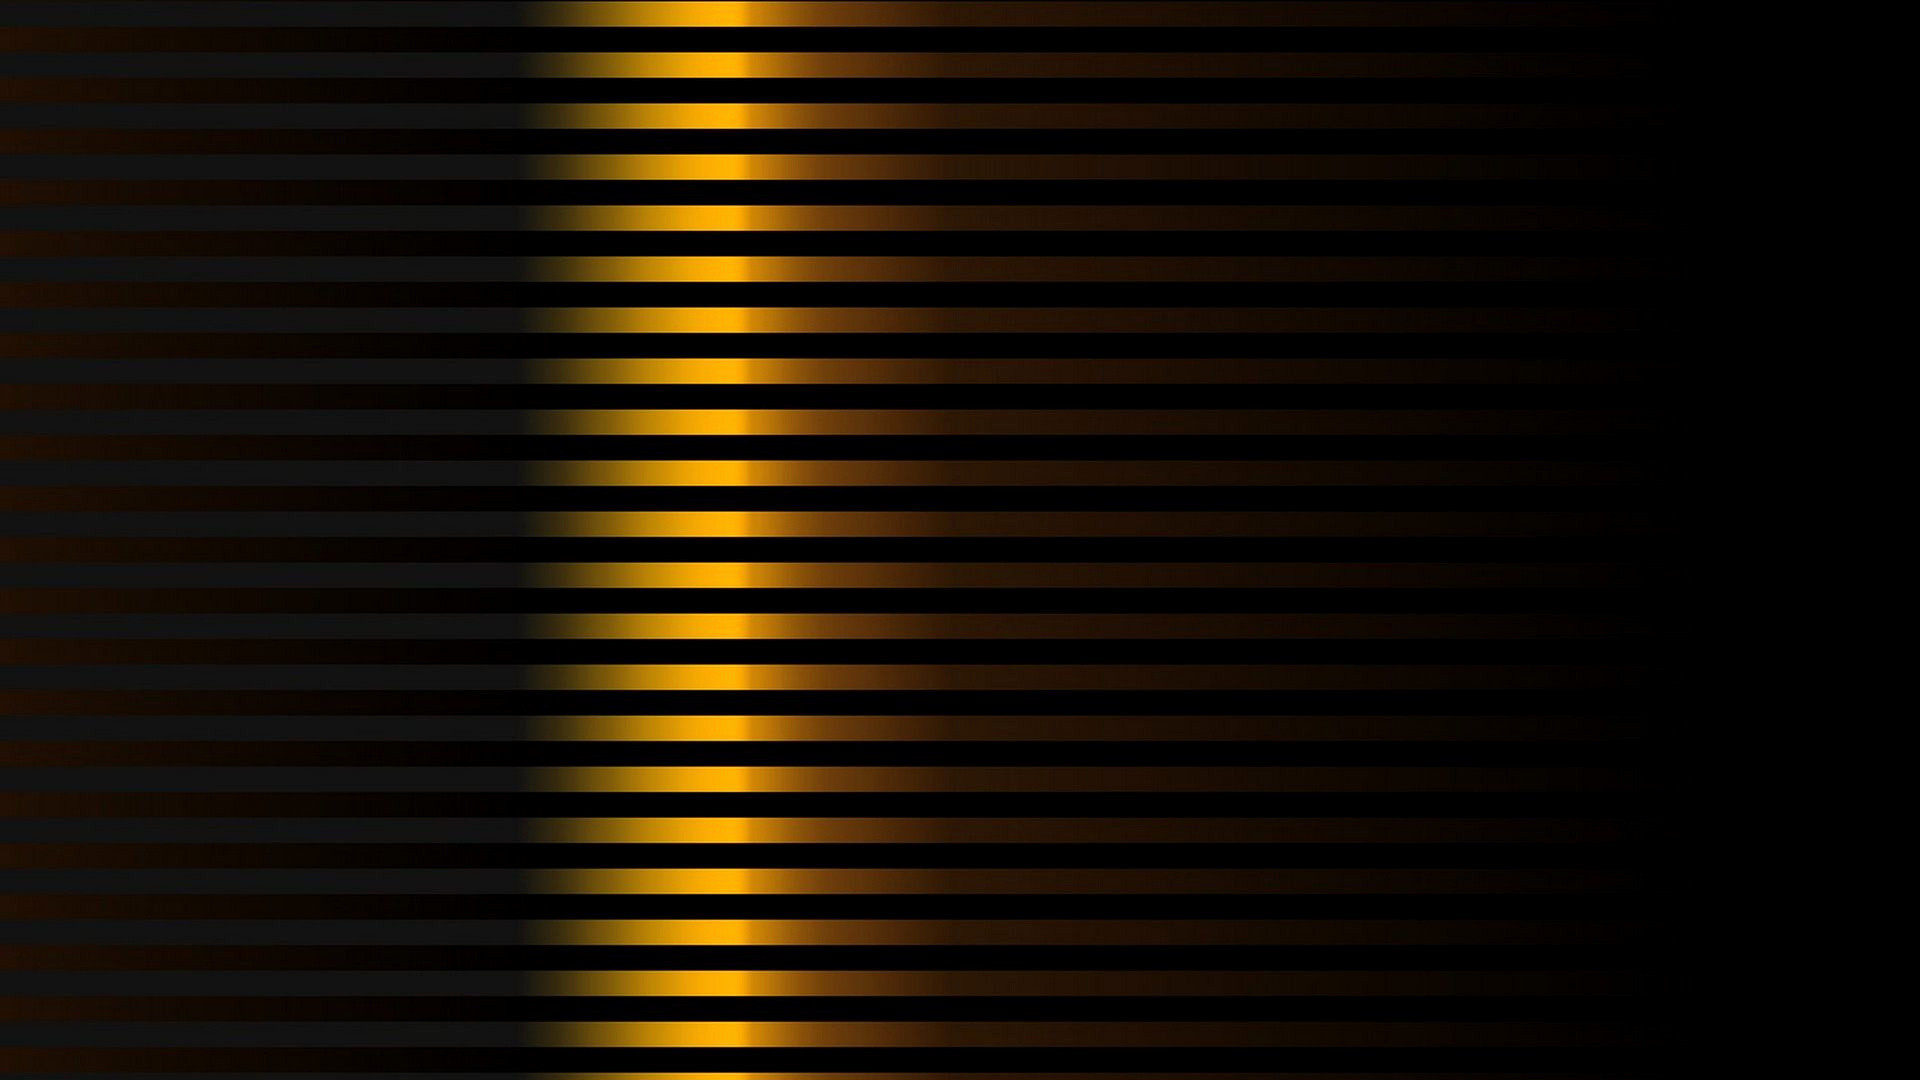 Res: 1920x1080, Gold Glitter Wallpaper for iPhone Awesome Gold Wallpaper Beautiful Black  and White Wallpapers Fresh Pin by